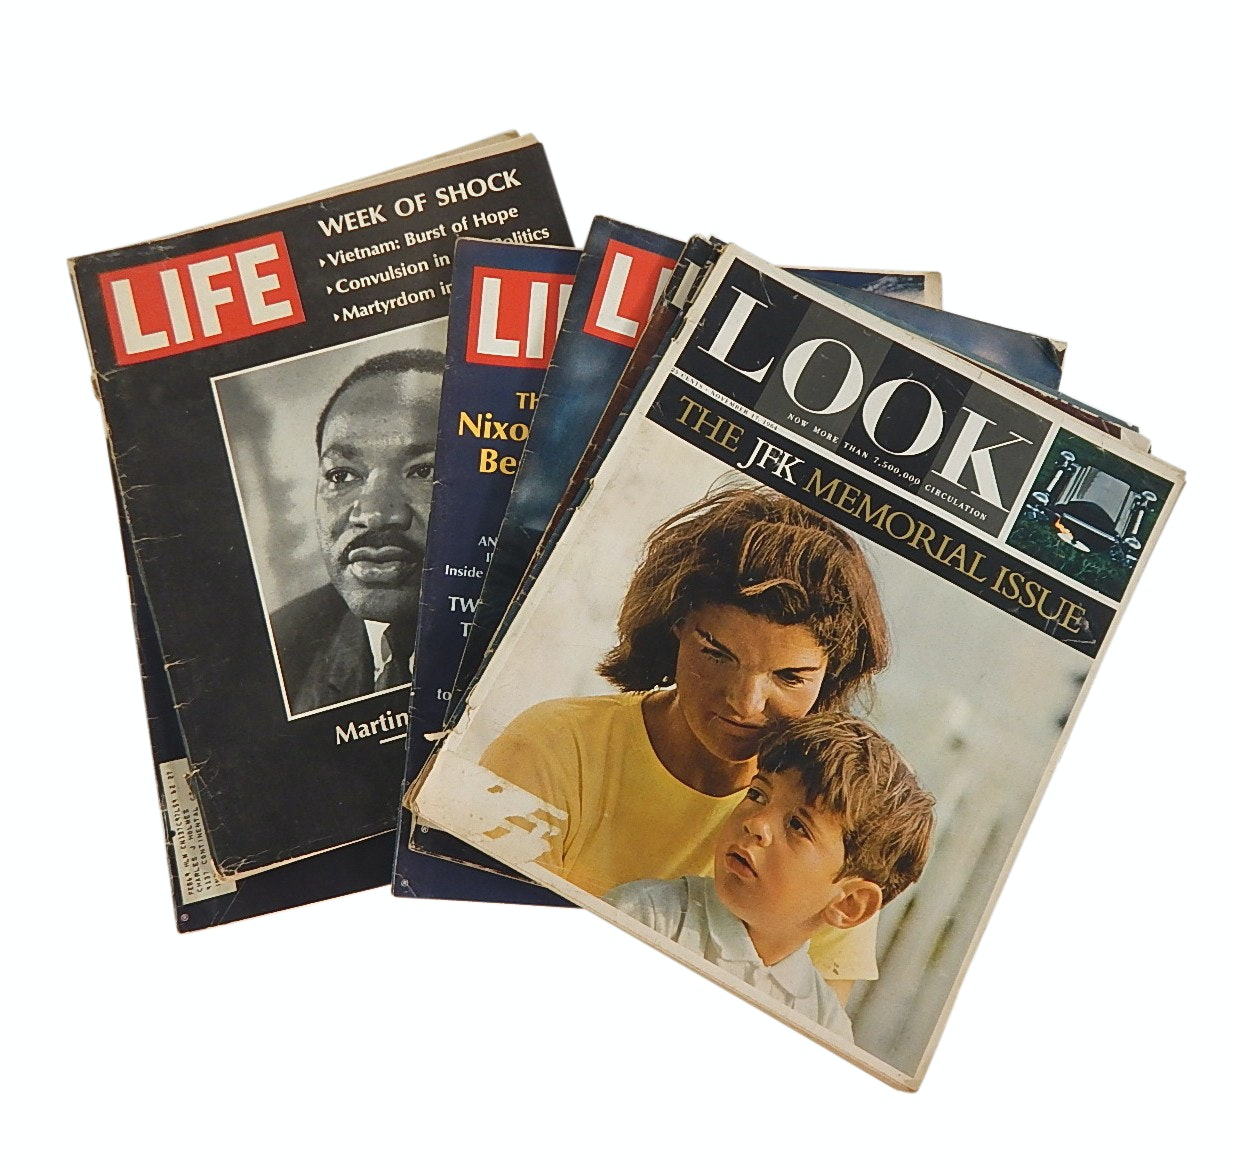 """""""Life"""" and """"Look Magazines with Kennedy, Martin Luther King Covers, 1964 to 1967"""